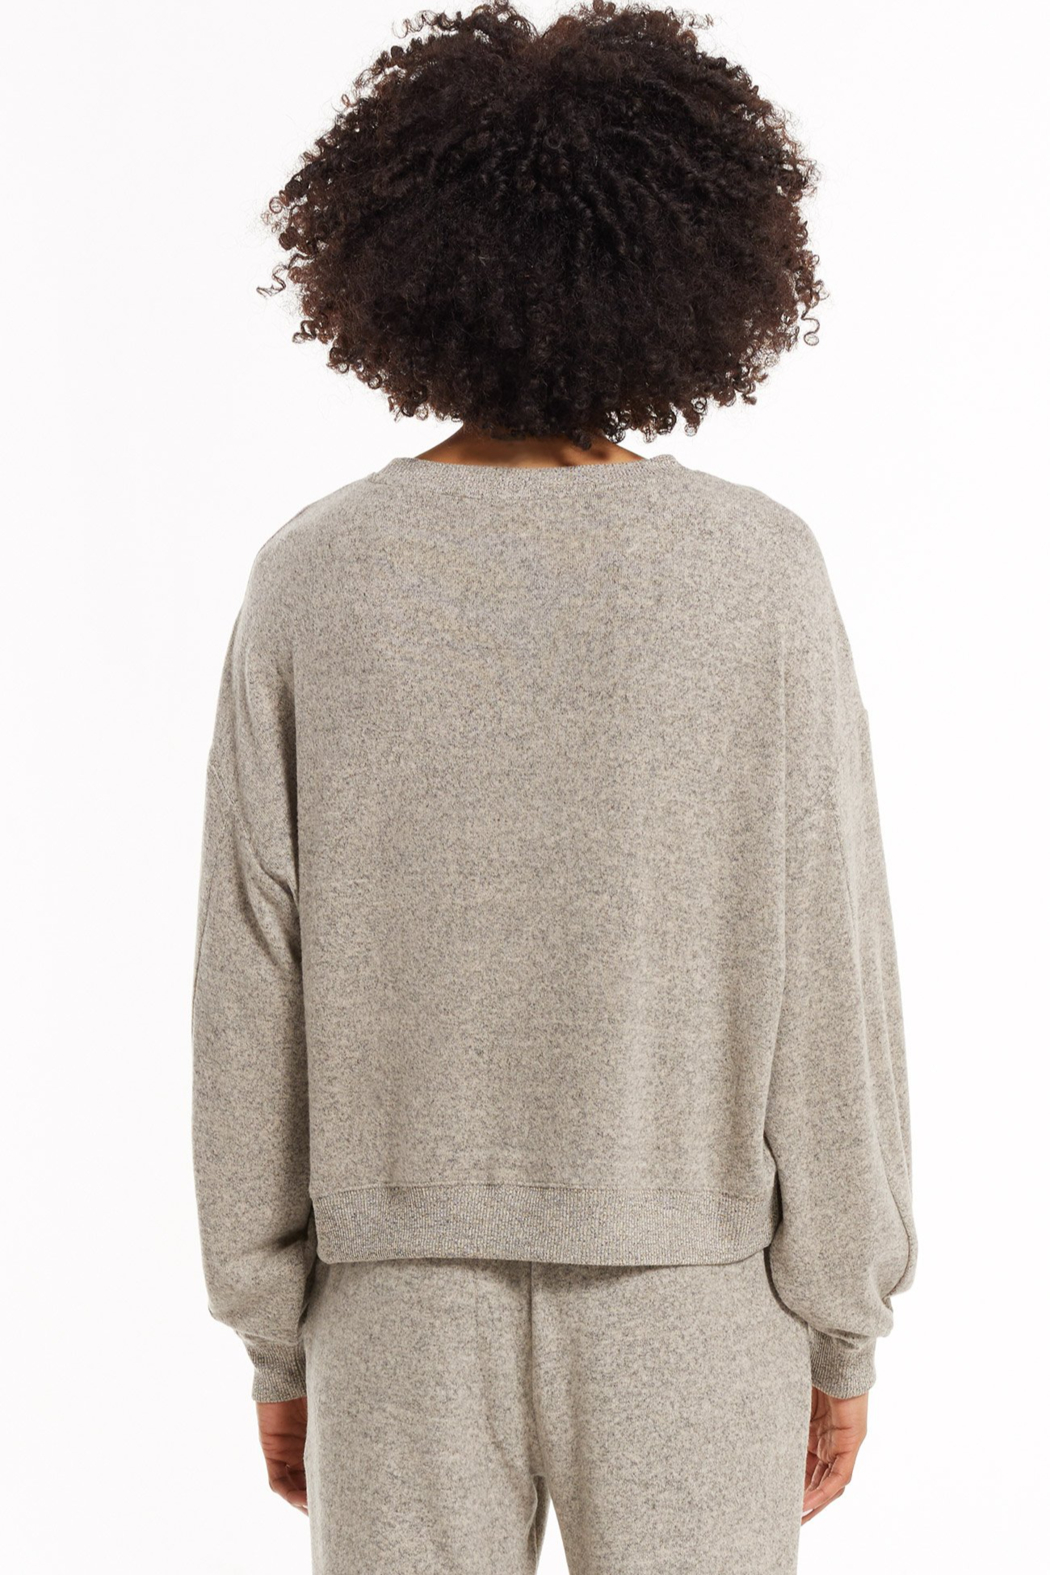 z supply Noa Marled Top - Side Cropped Image